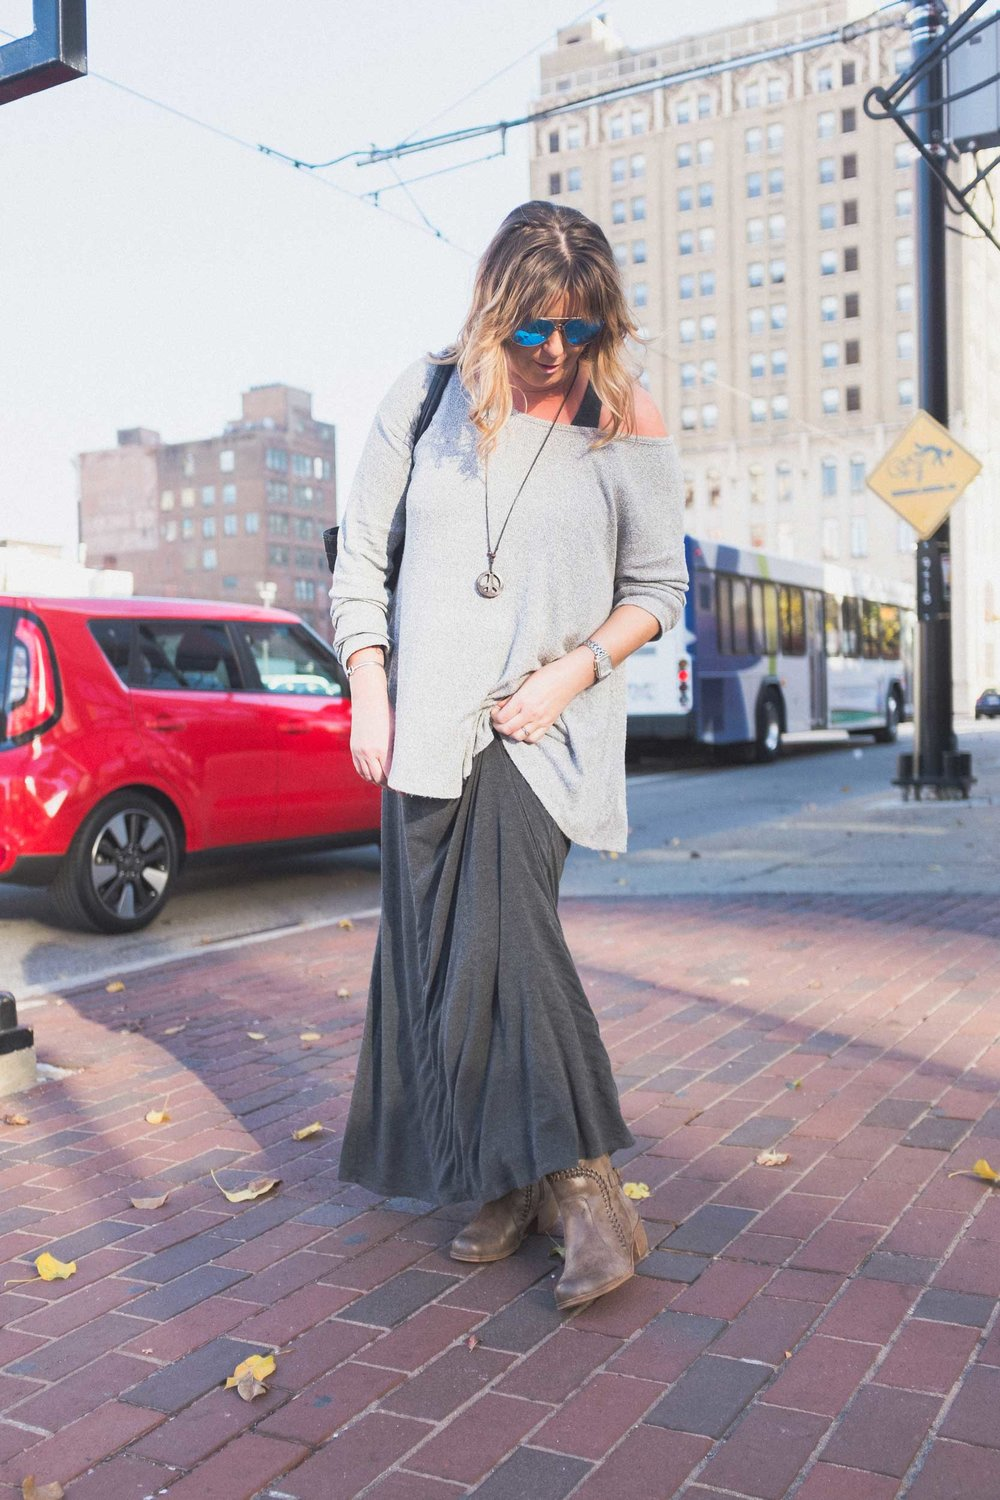 Jenn with the flow-y shirt over top the flow-y dress. This is fall style, right here.